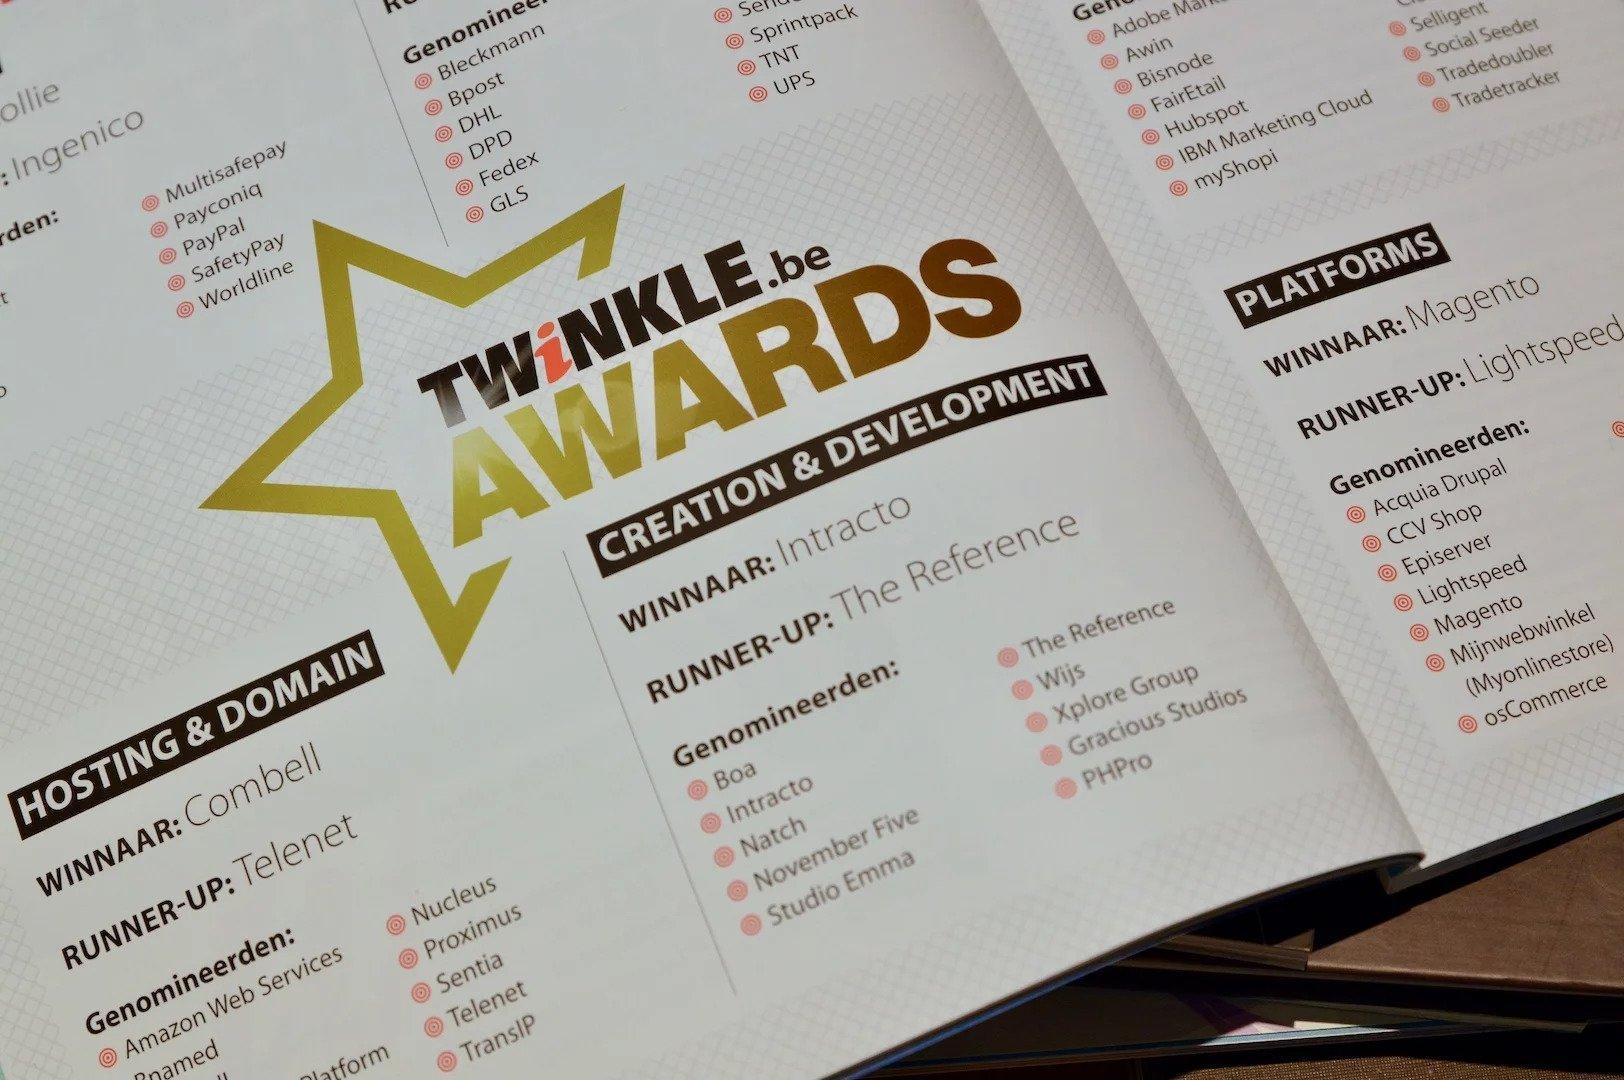 blog-Intracto-wint-Twinkle-Award-2017-creation